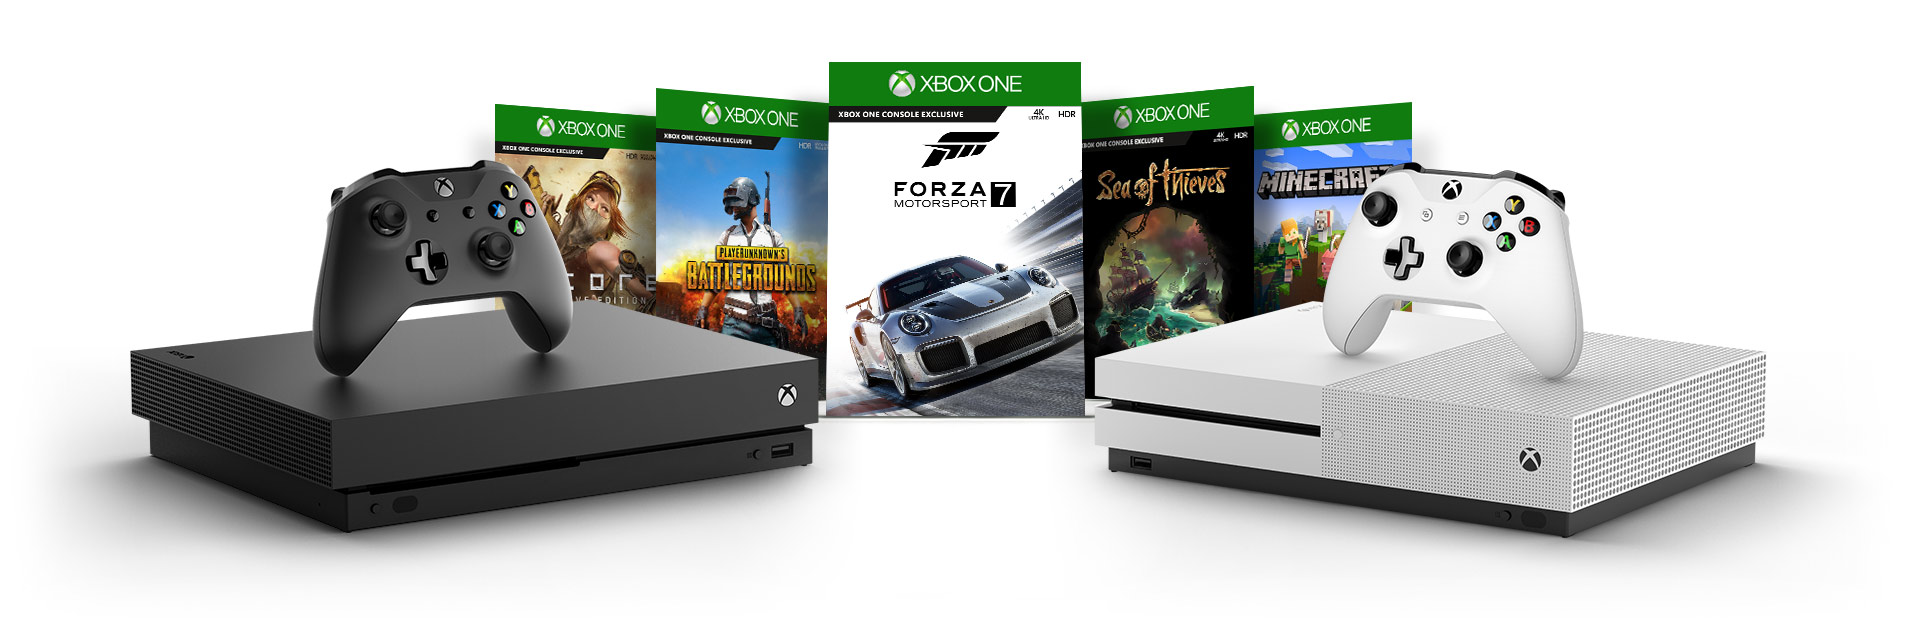 State of Decay 2 Player Unknown's Battlegrounds Forza 7 Sea of Thieves a Cuphead – obrázky balenia za konzolami Xbox One X a Xbox One S